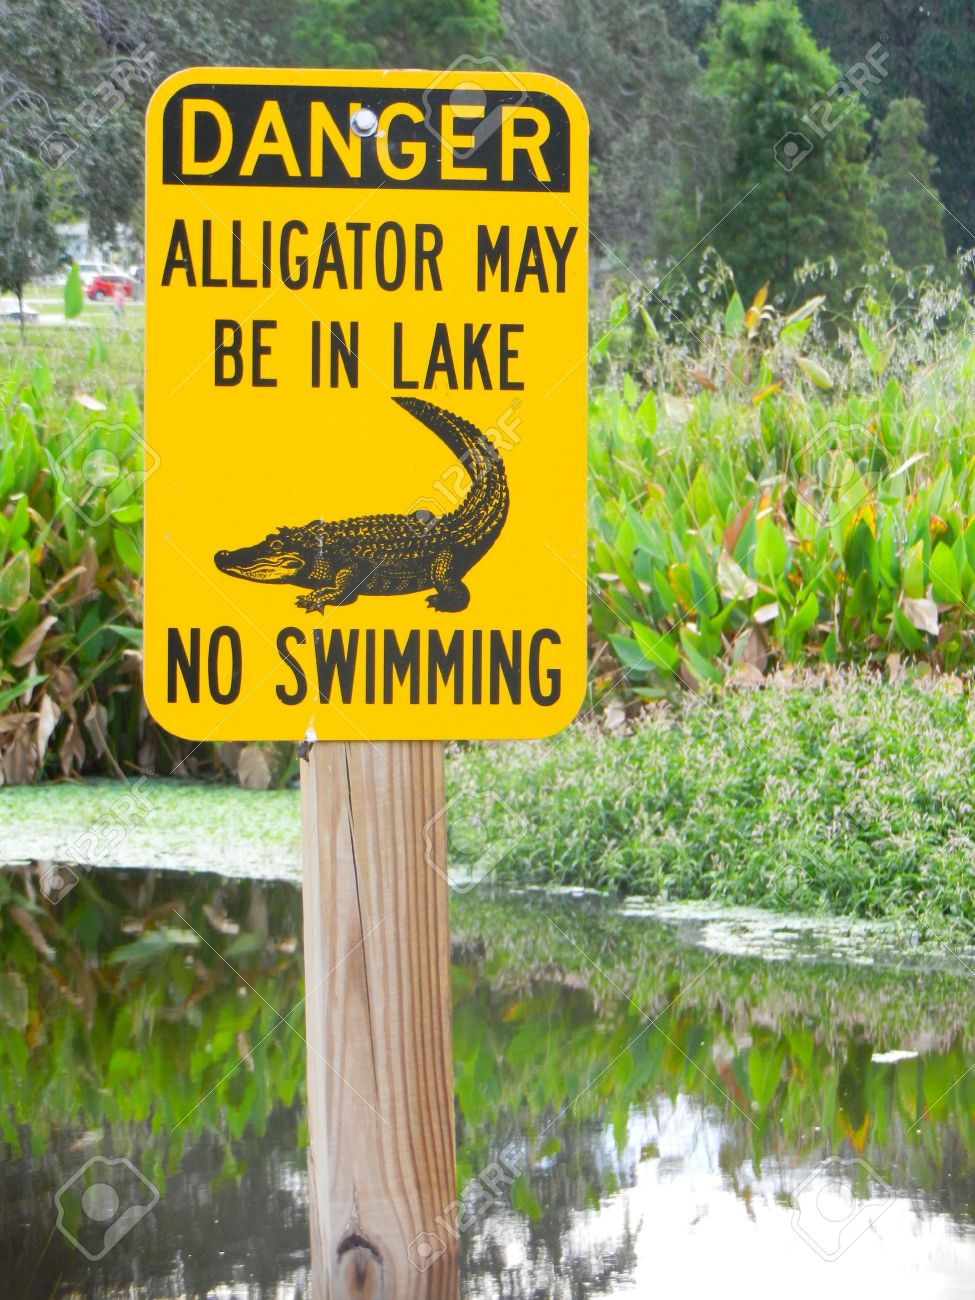 danger alligator may be in lake no swimming sign by lake stock